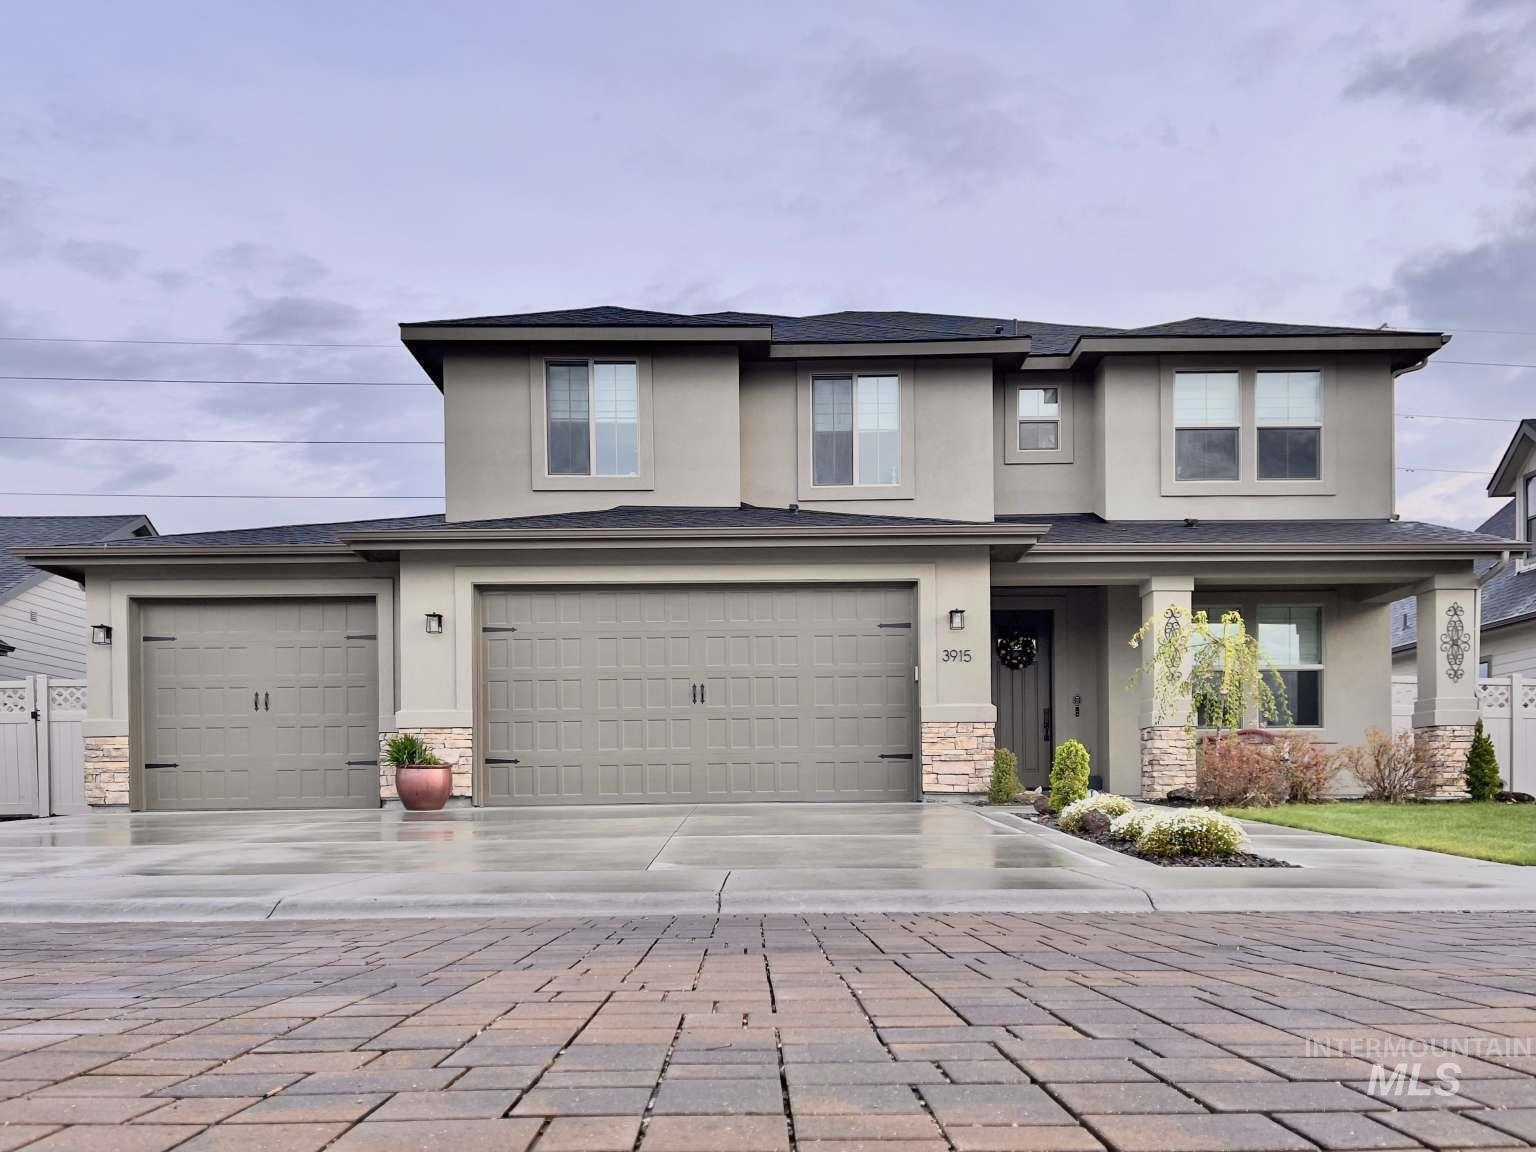 3915 W Riva Capri St Property Photo - Meridian, ID real estate listing